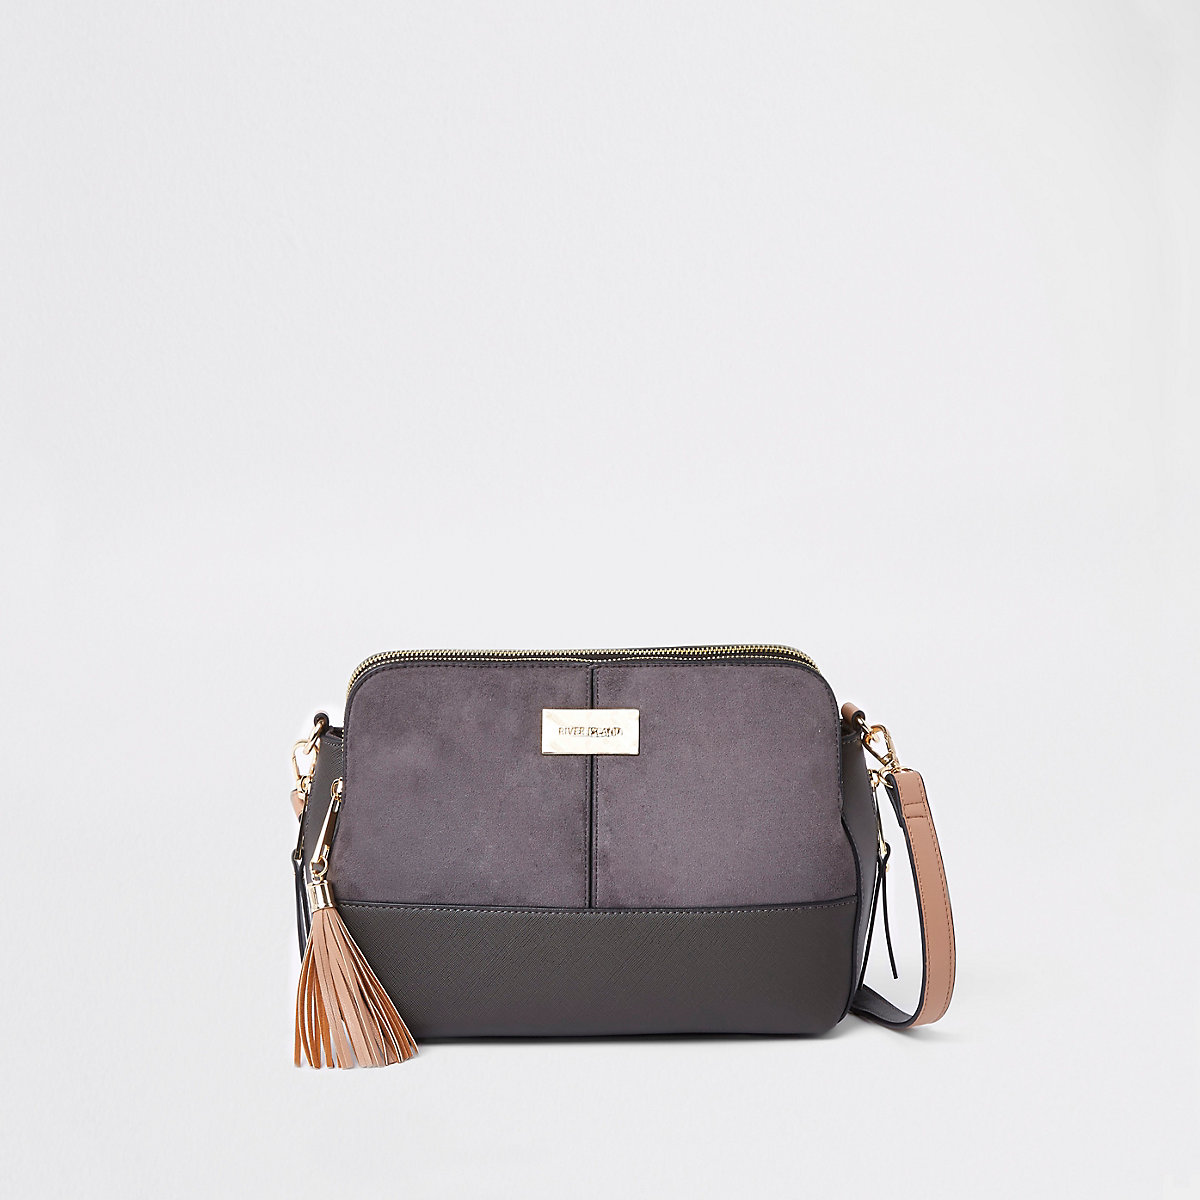 Dark grey triple compartment cross body bag